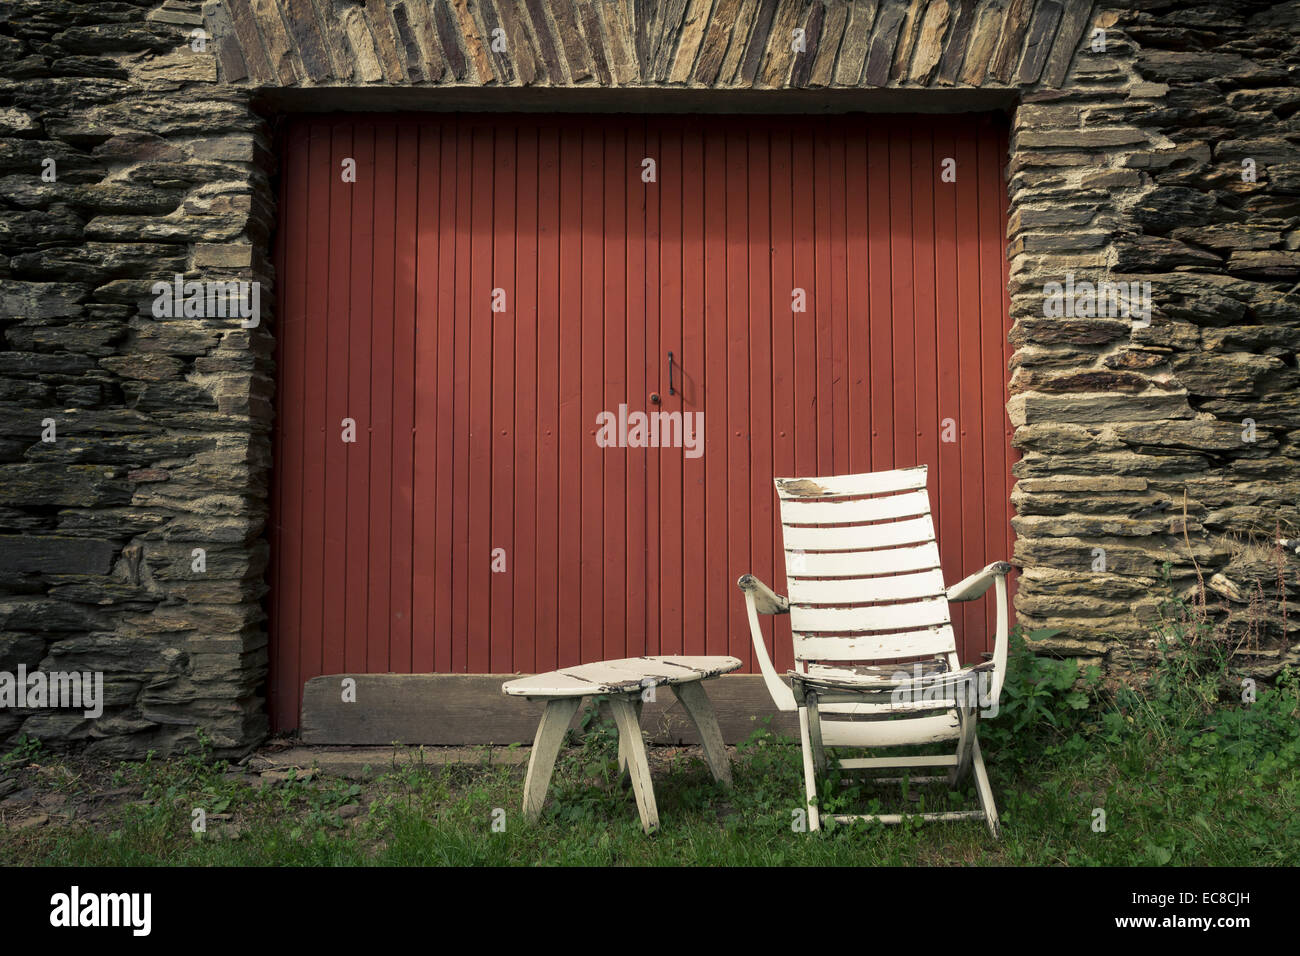 schist stones old table old chair - Stock Image